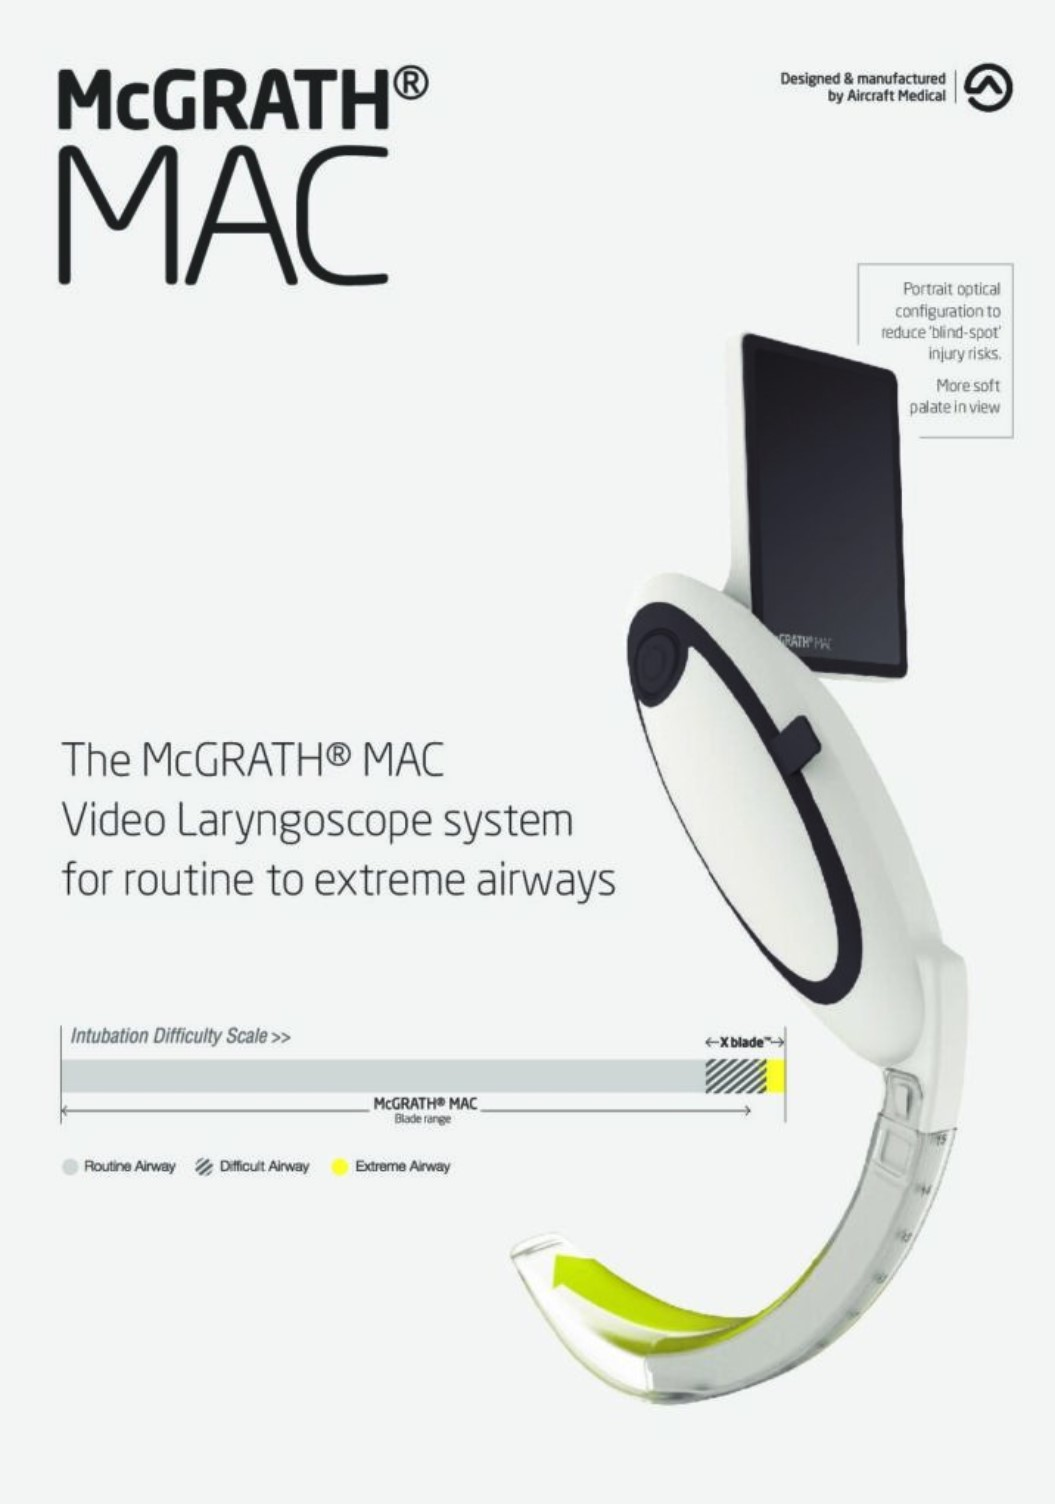 Folder-McGRATH-MAC-mit-Xblade.jpg